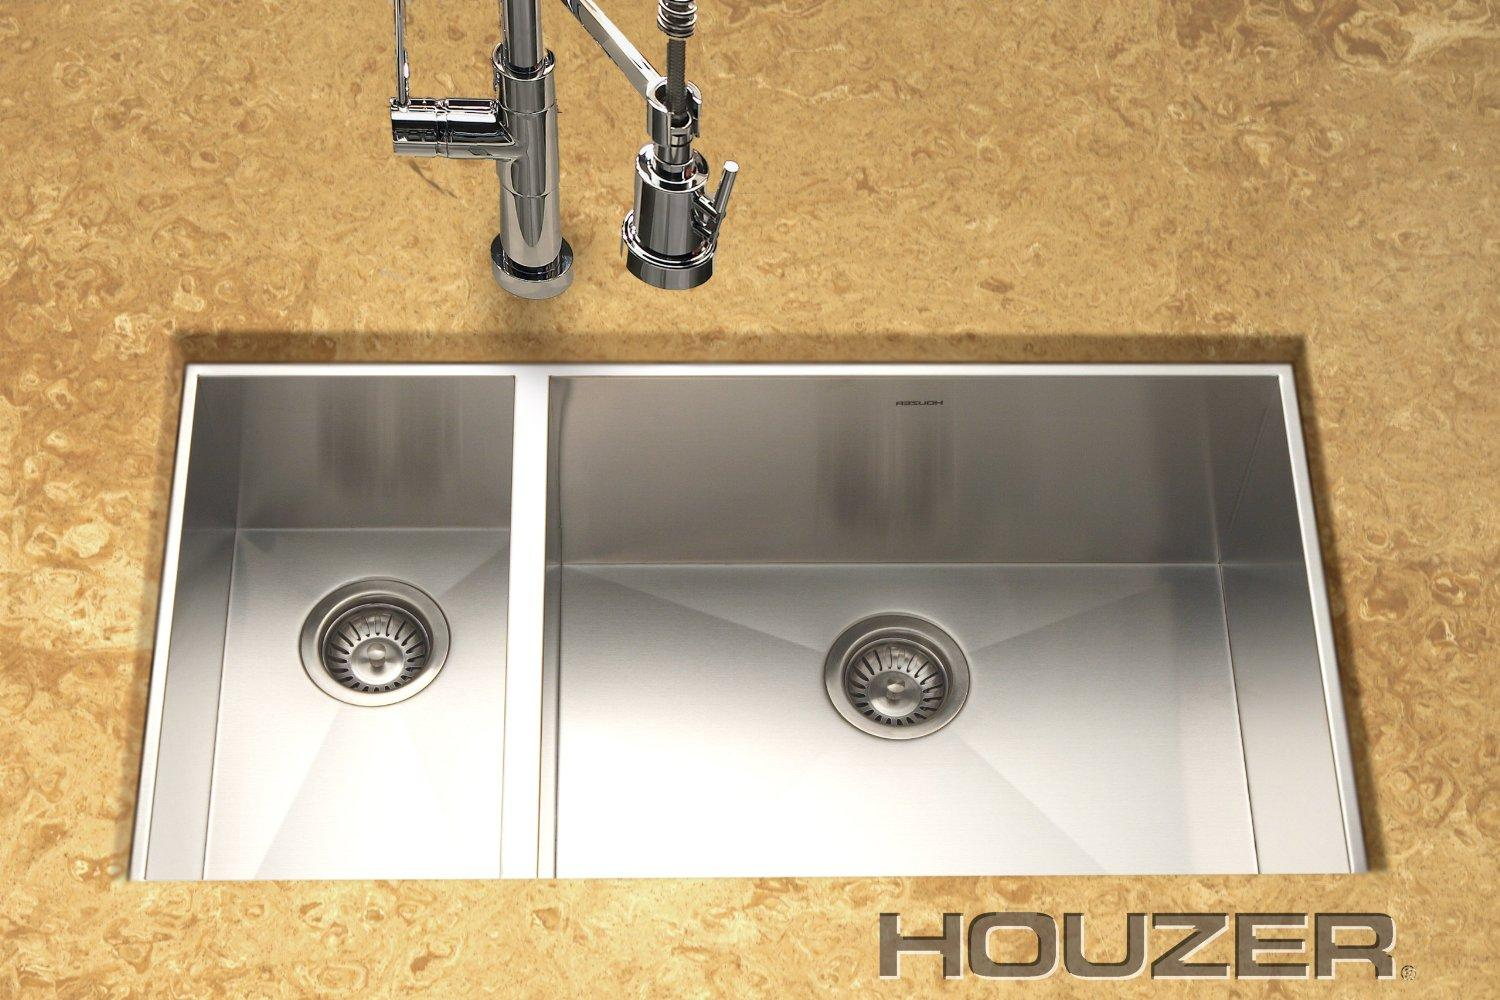 Houzer Sinks : ... Sink, Prep bowl left - Brushed Stainless Undermount Sinks - Amazon.com